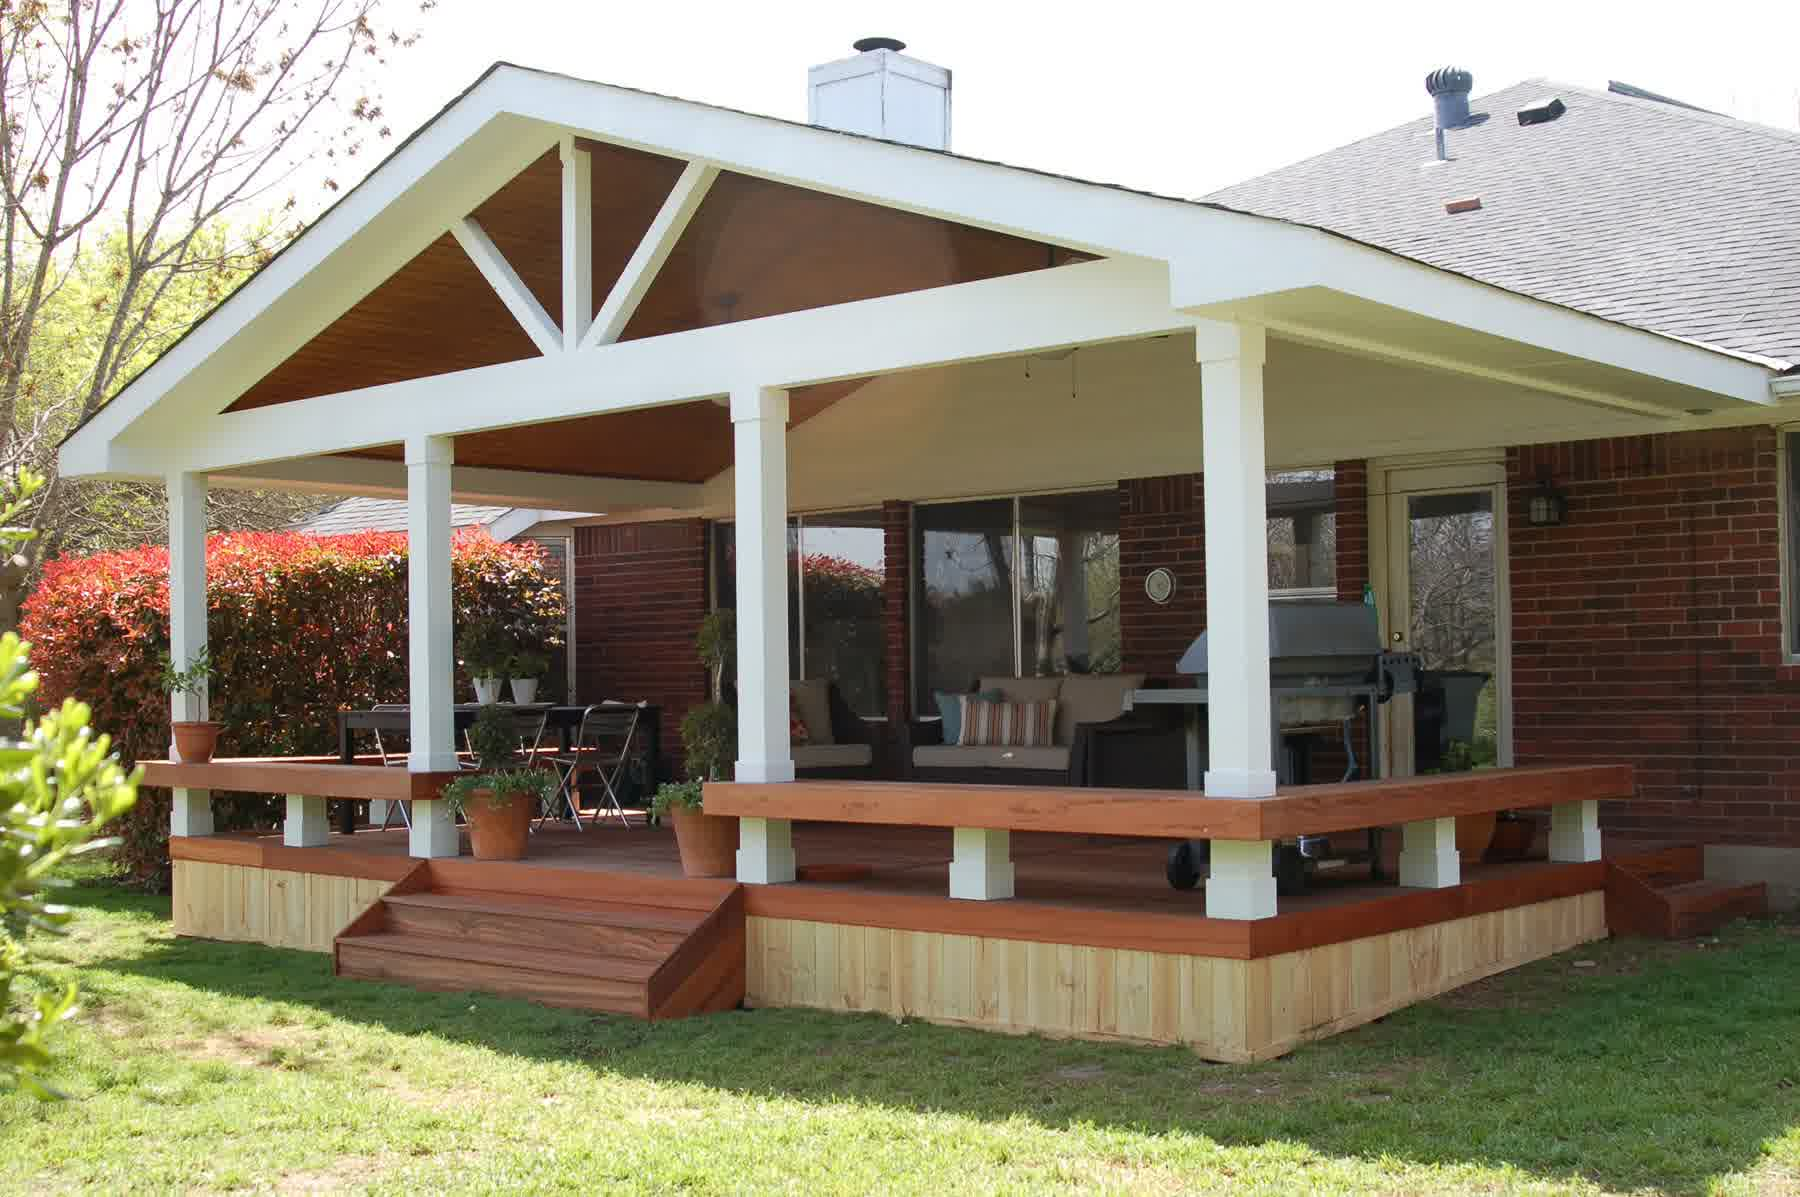 Covered Deck Designs - HomesFeed on Deck Cover Ideas  id=95964